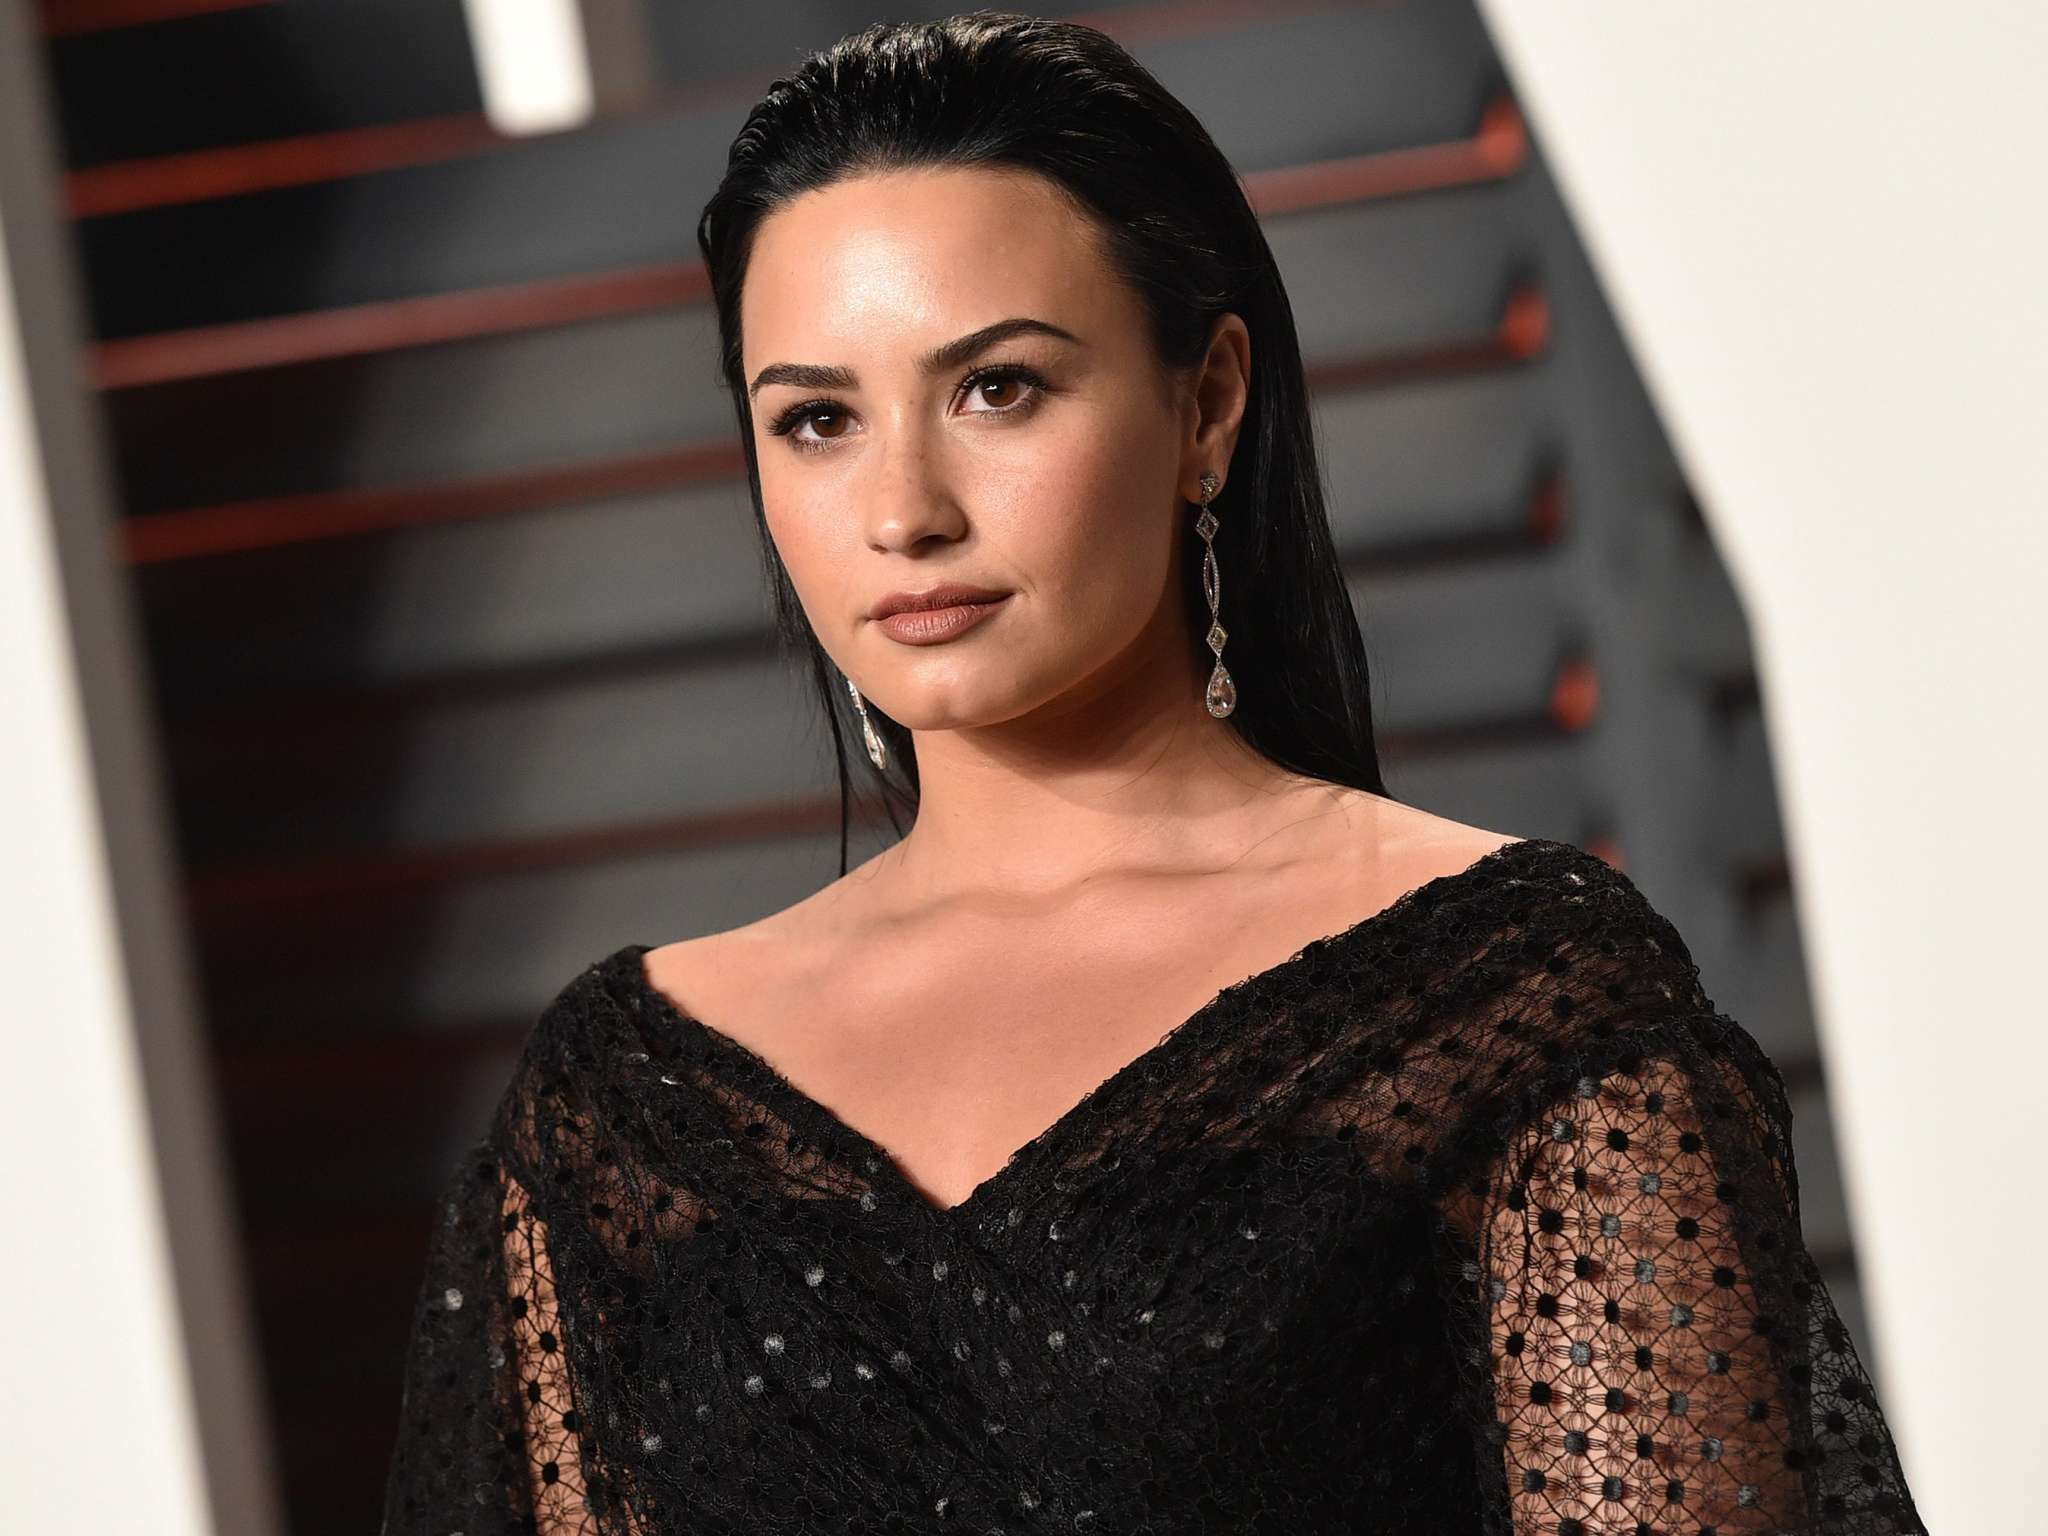 Demi Lovato Breaks Down Over Her Split From Max Ehrich In Her Documentary – Watch!